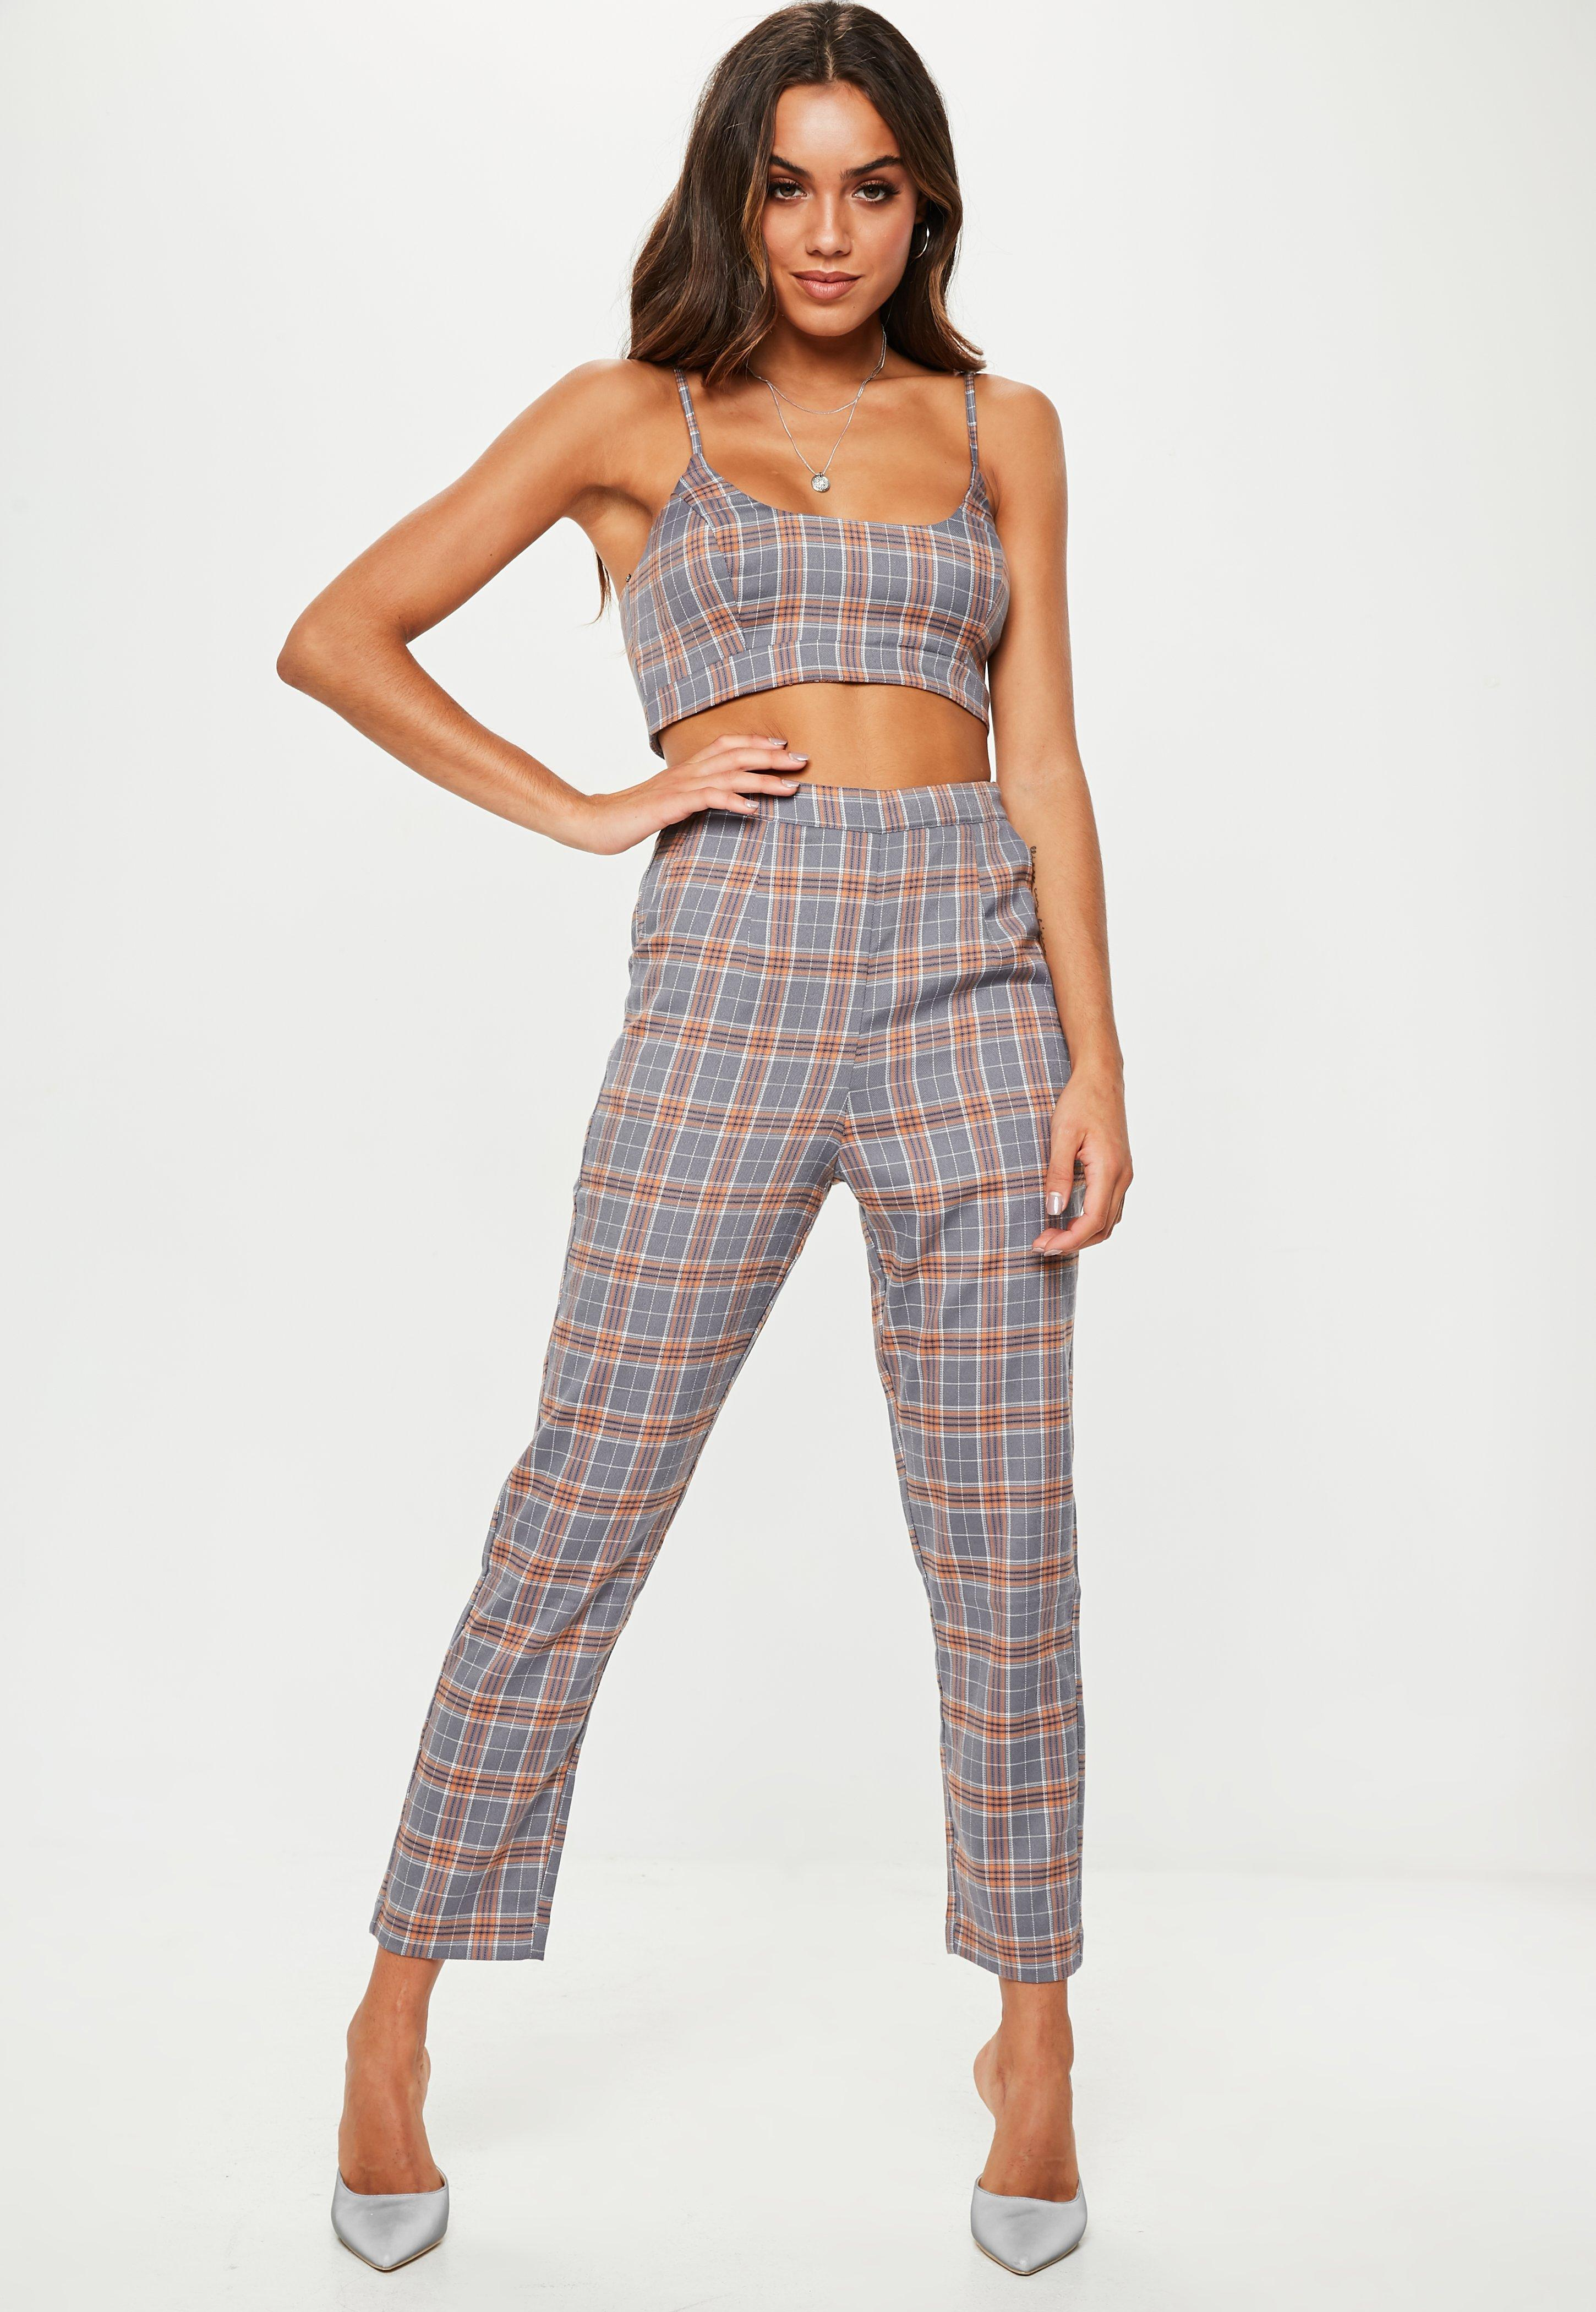 c1ca0d2f47211 Lyst - Missguided Gray Plaid Bralette in Gray